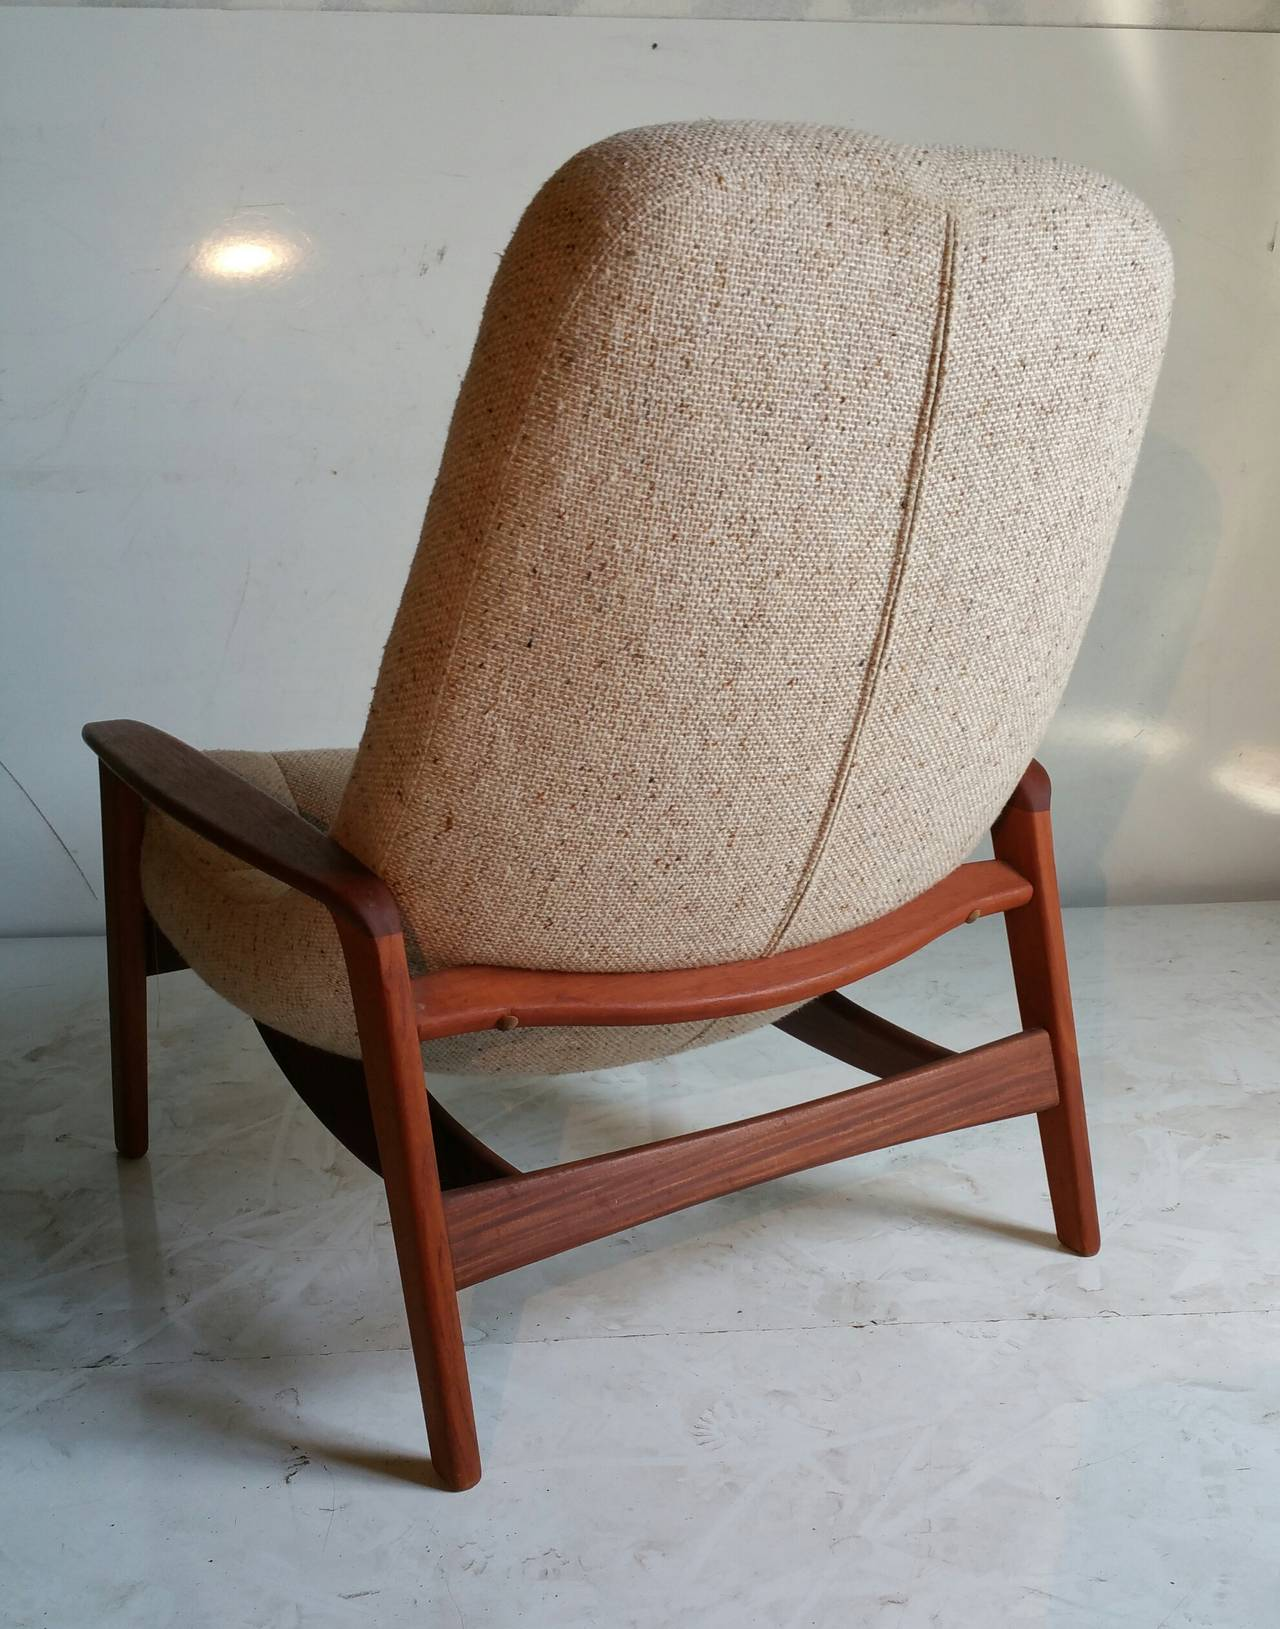 teak floating egg chair by r huber and co mid century danish at 1stdibs. Black Bedroom Furniture Sets. Home Design Ideas